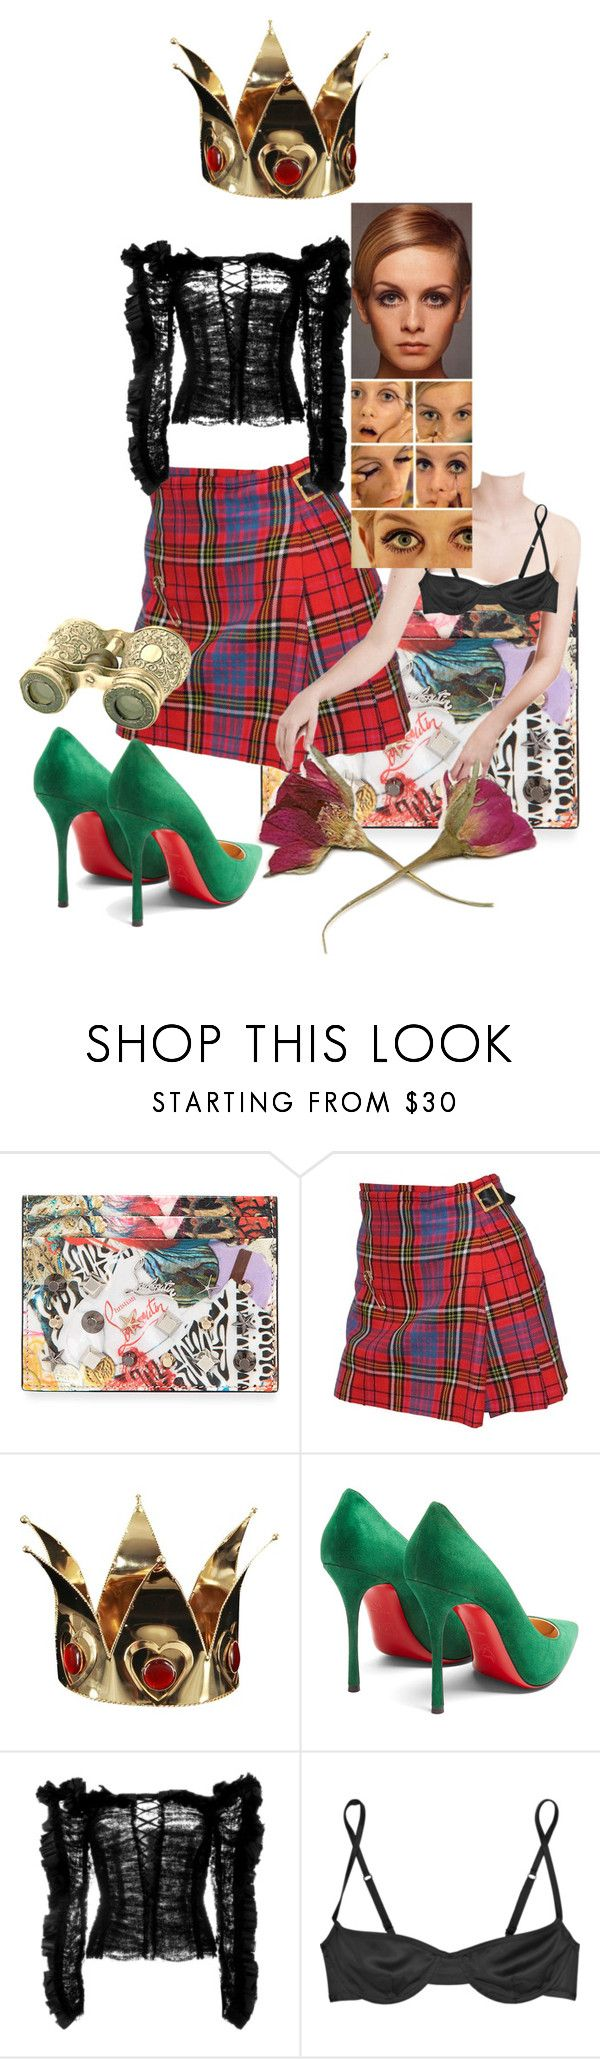 """Untitled #212"" by gina-stewart75 on Polyvore featuring Christian Louboutin, Vivienne Westwood, Buy Seasons, Roberto Cavalli and Marni"